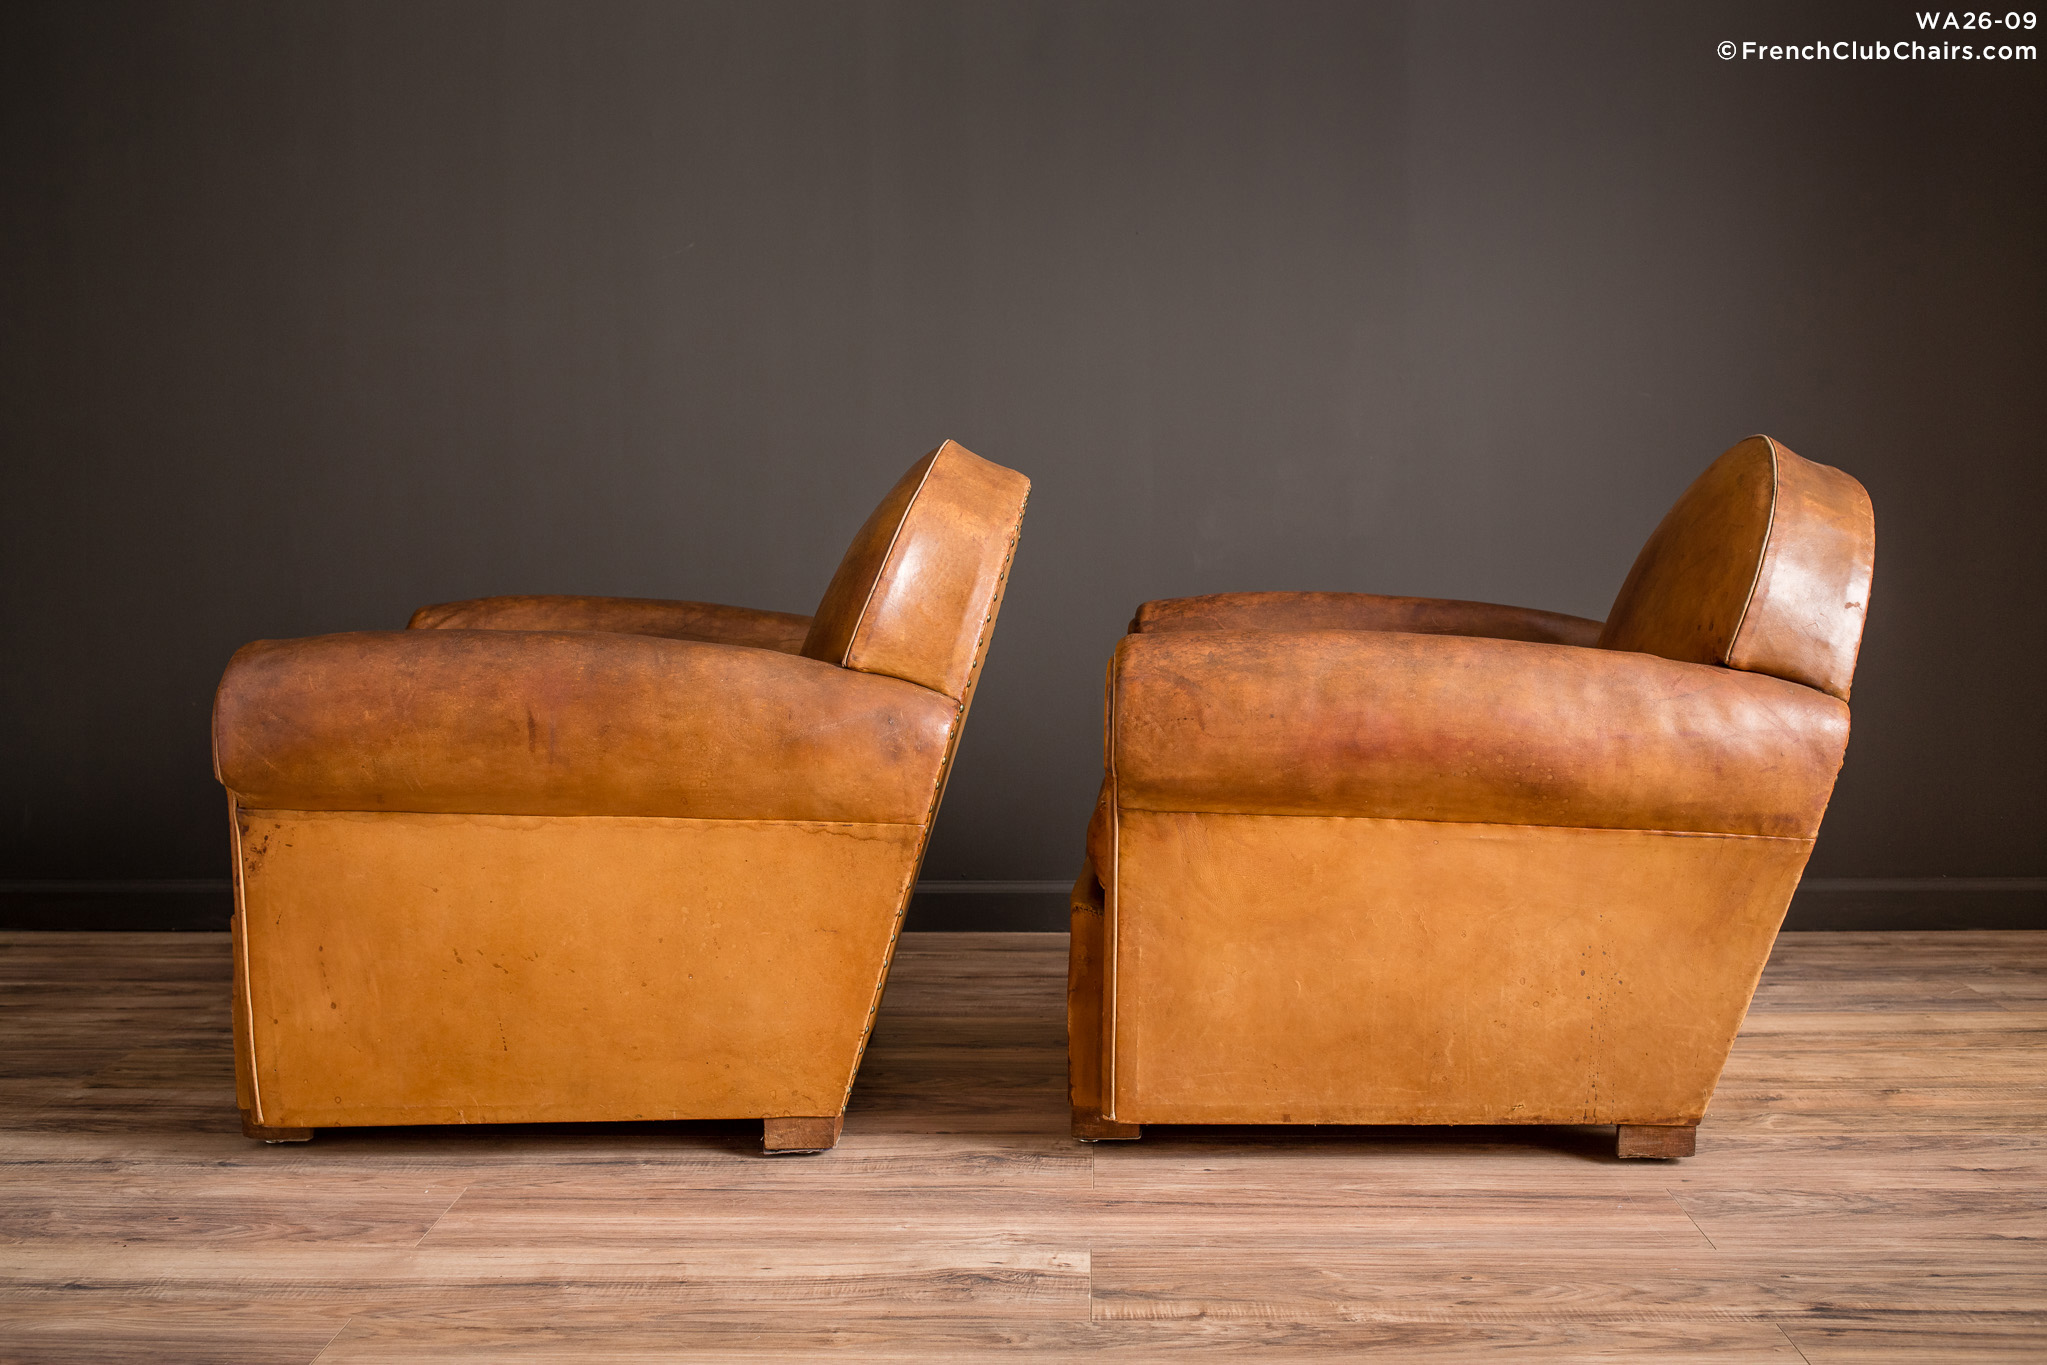 WA_26-09_Bern_Cinema_Clair_pair_R_4LT-v01-williams-antiks-leather-french-club-chair-wa_fcccom